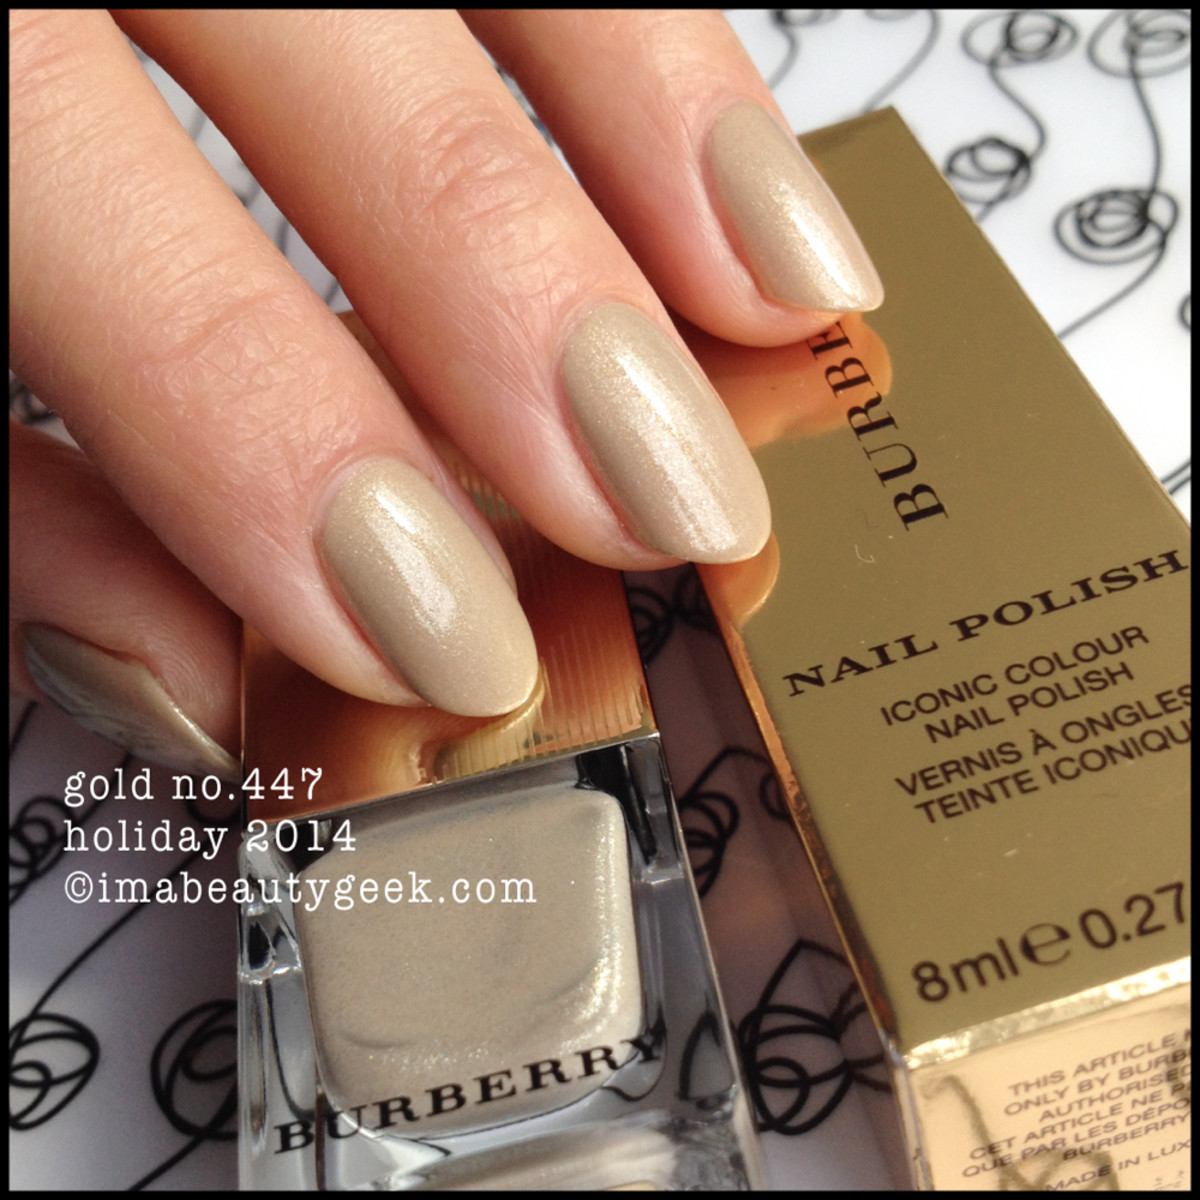 Burberry Gold 447 Nail Polish Holiday 2014